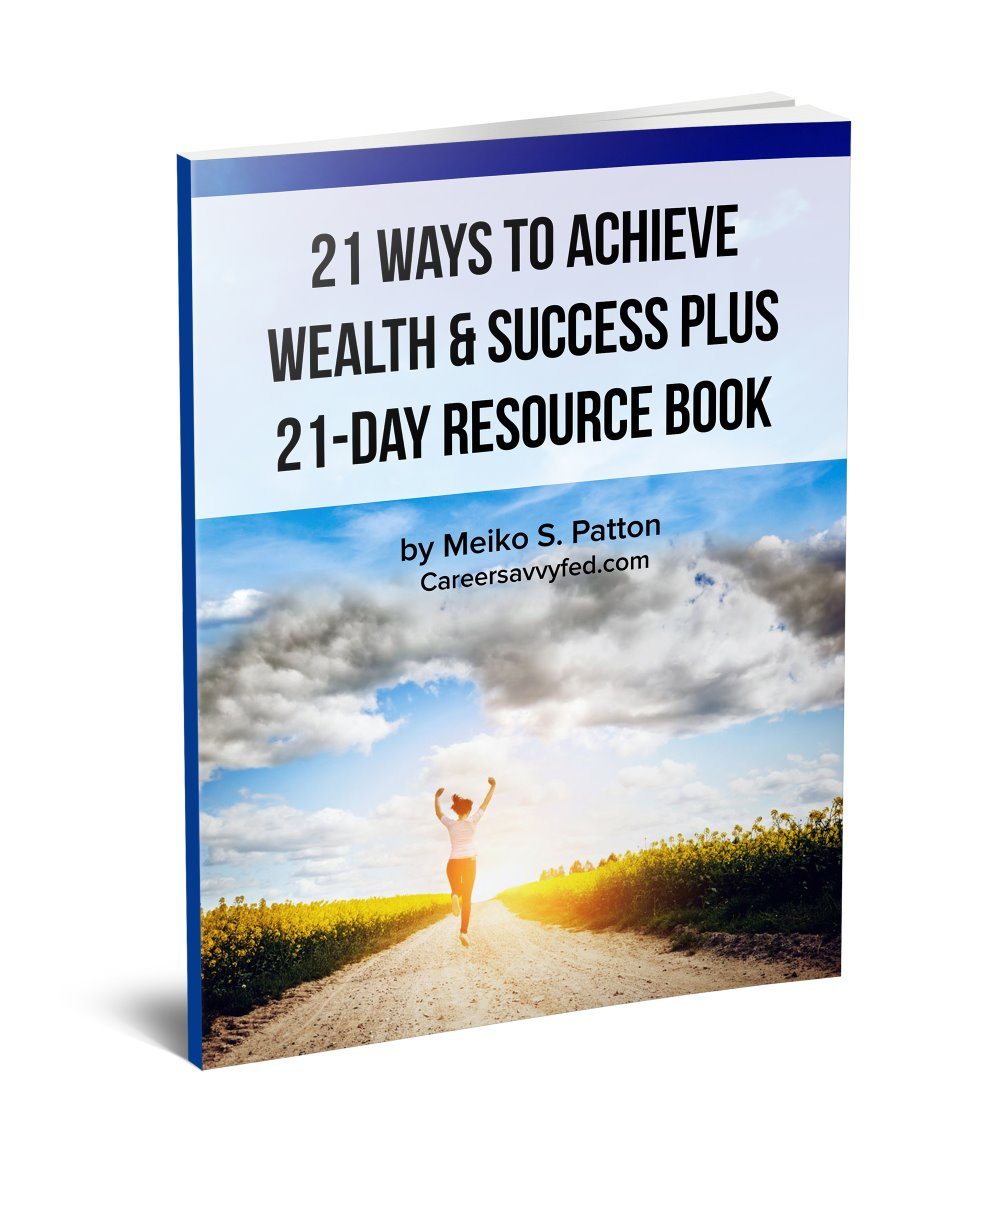 21 Ways To Achieve Wealth & Success Plus 21-Day Resource Book